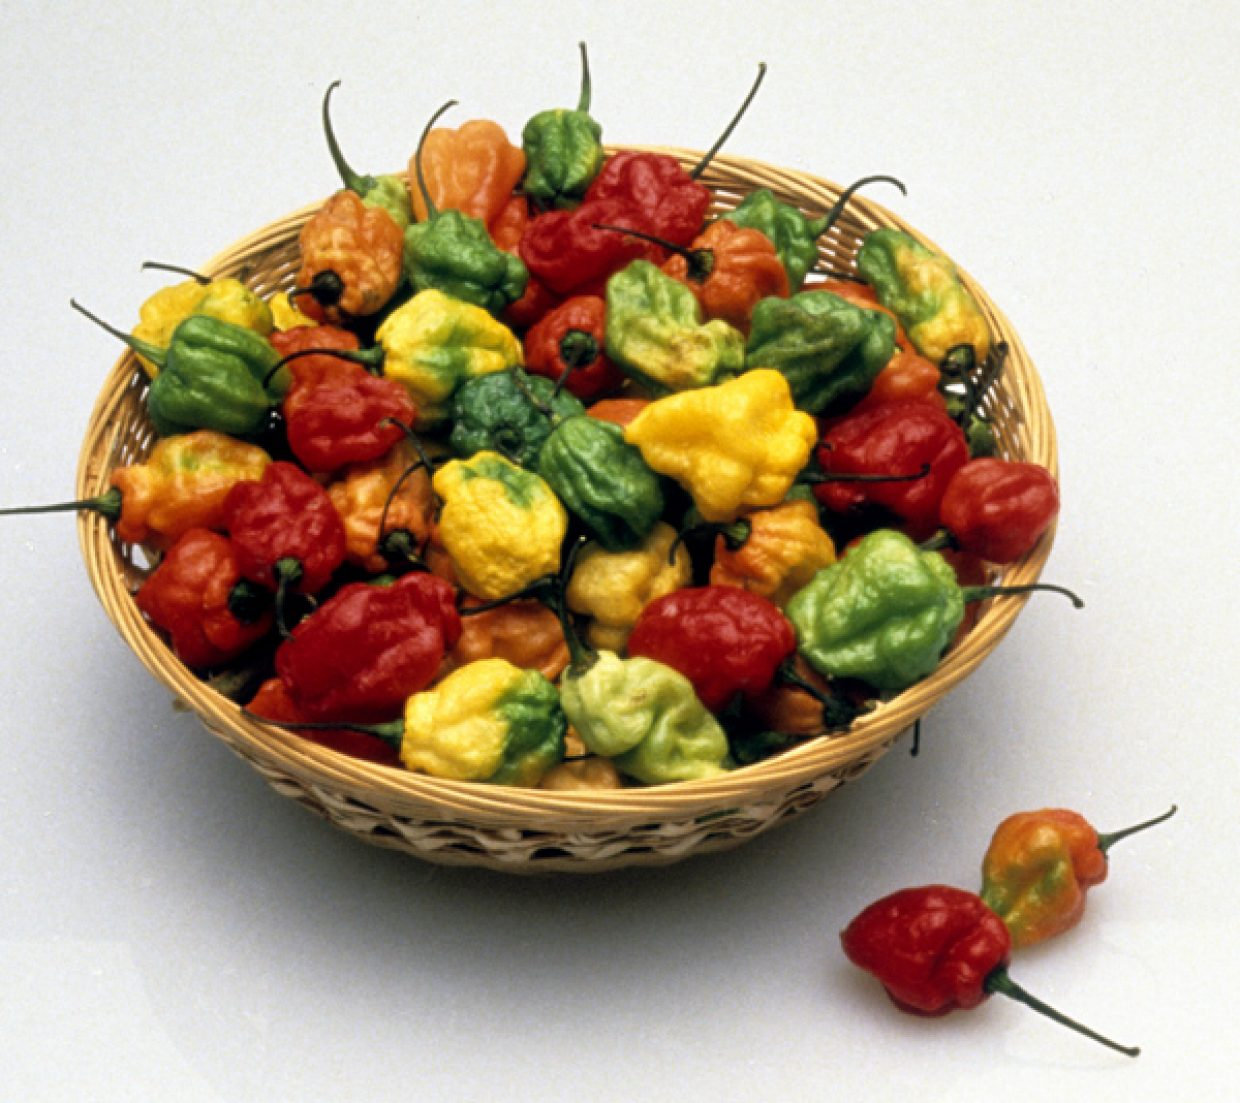 Habanero peppers in a dish